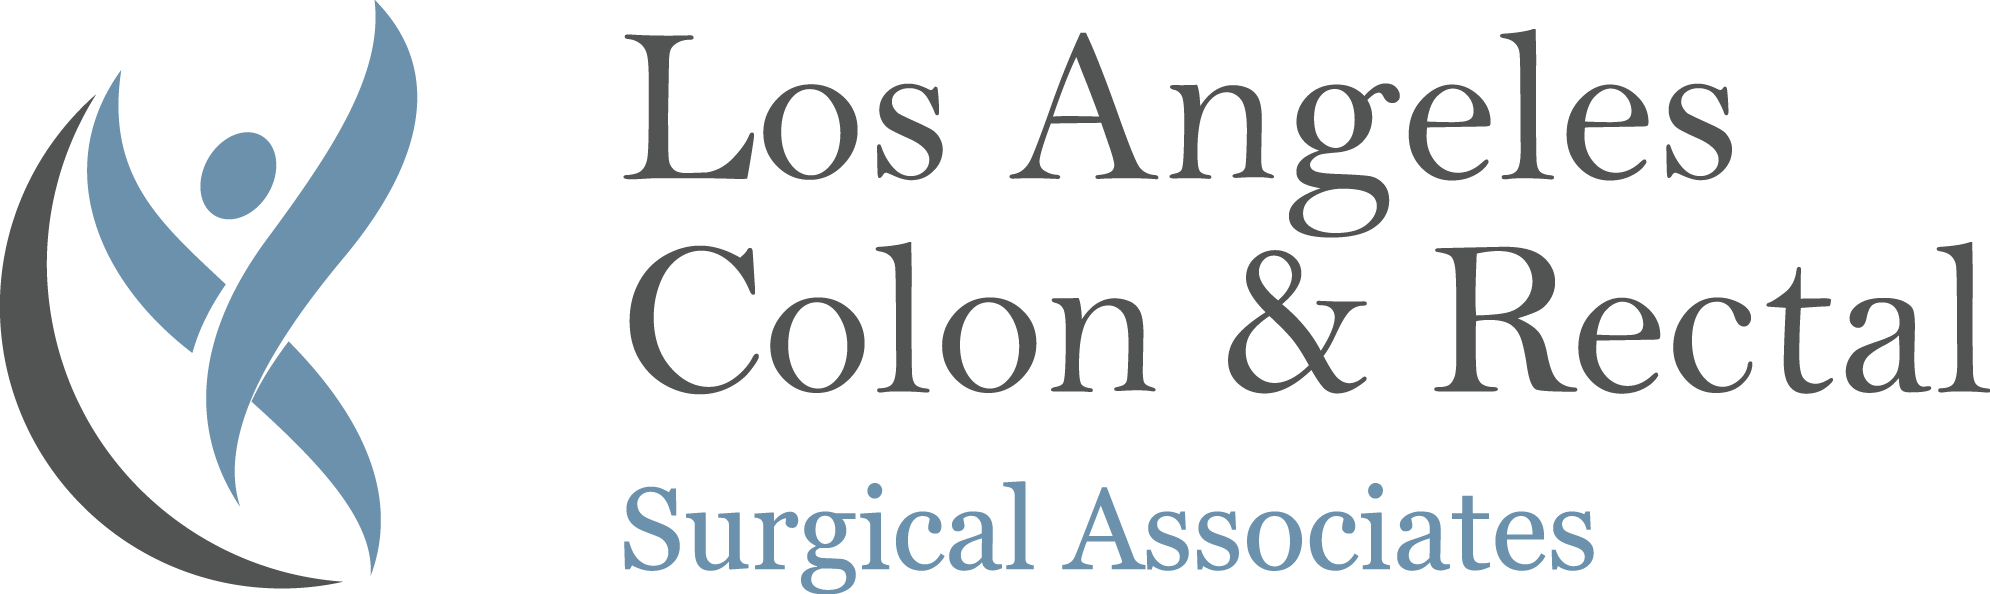 Los Angeles Colon